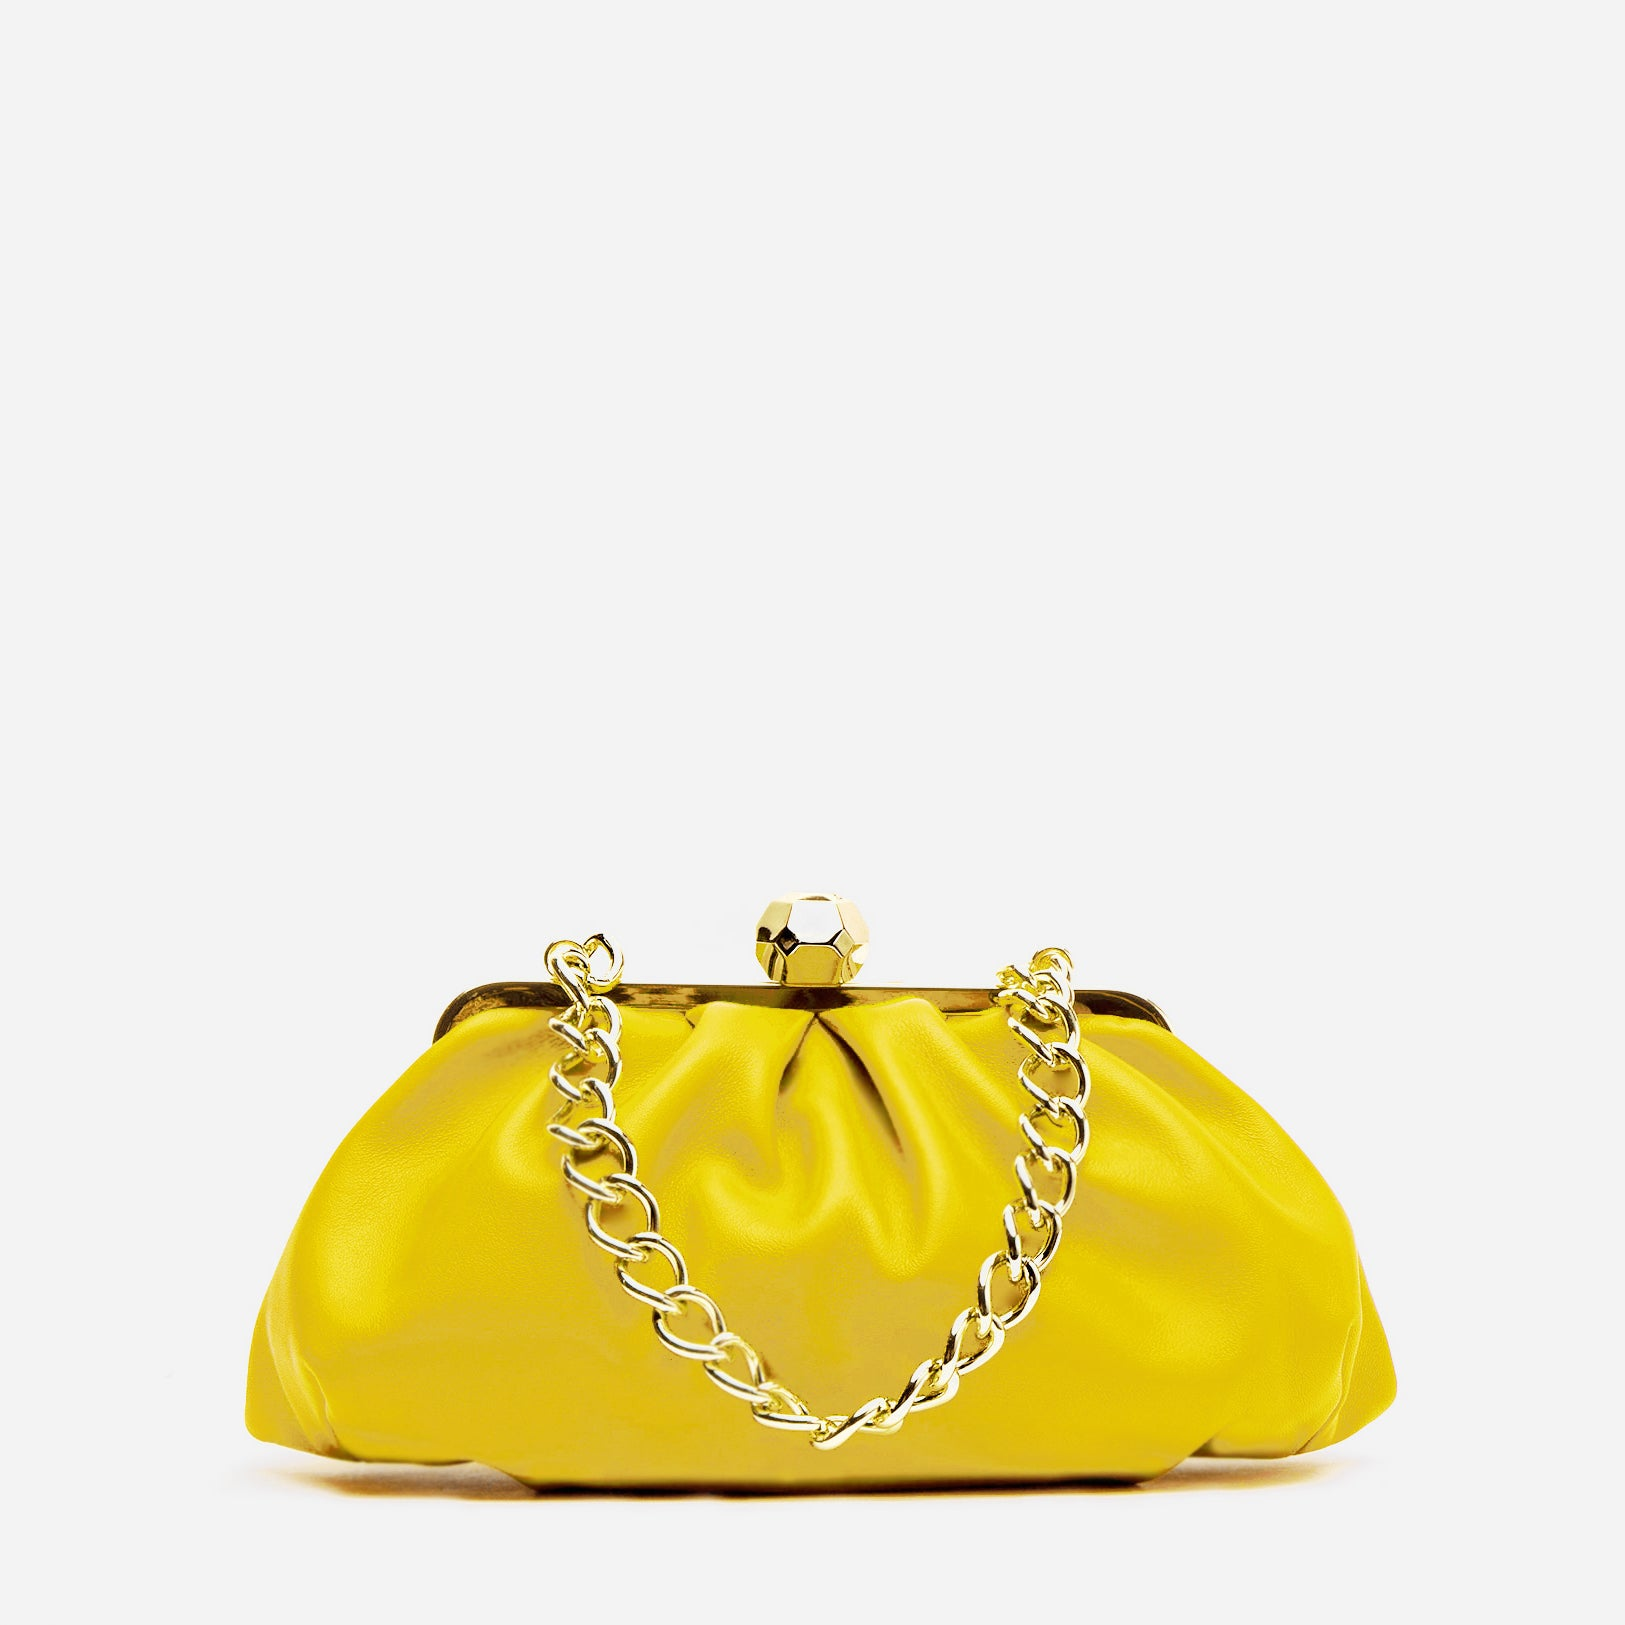 Zelda Frame Bag Nappa Leather Yellow